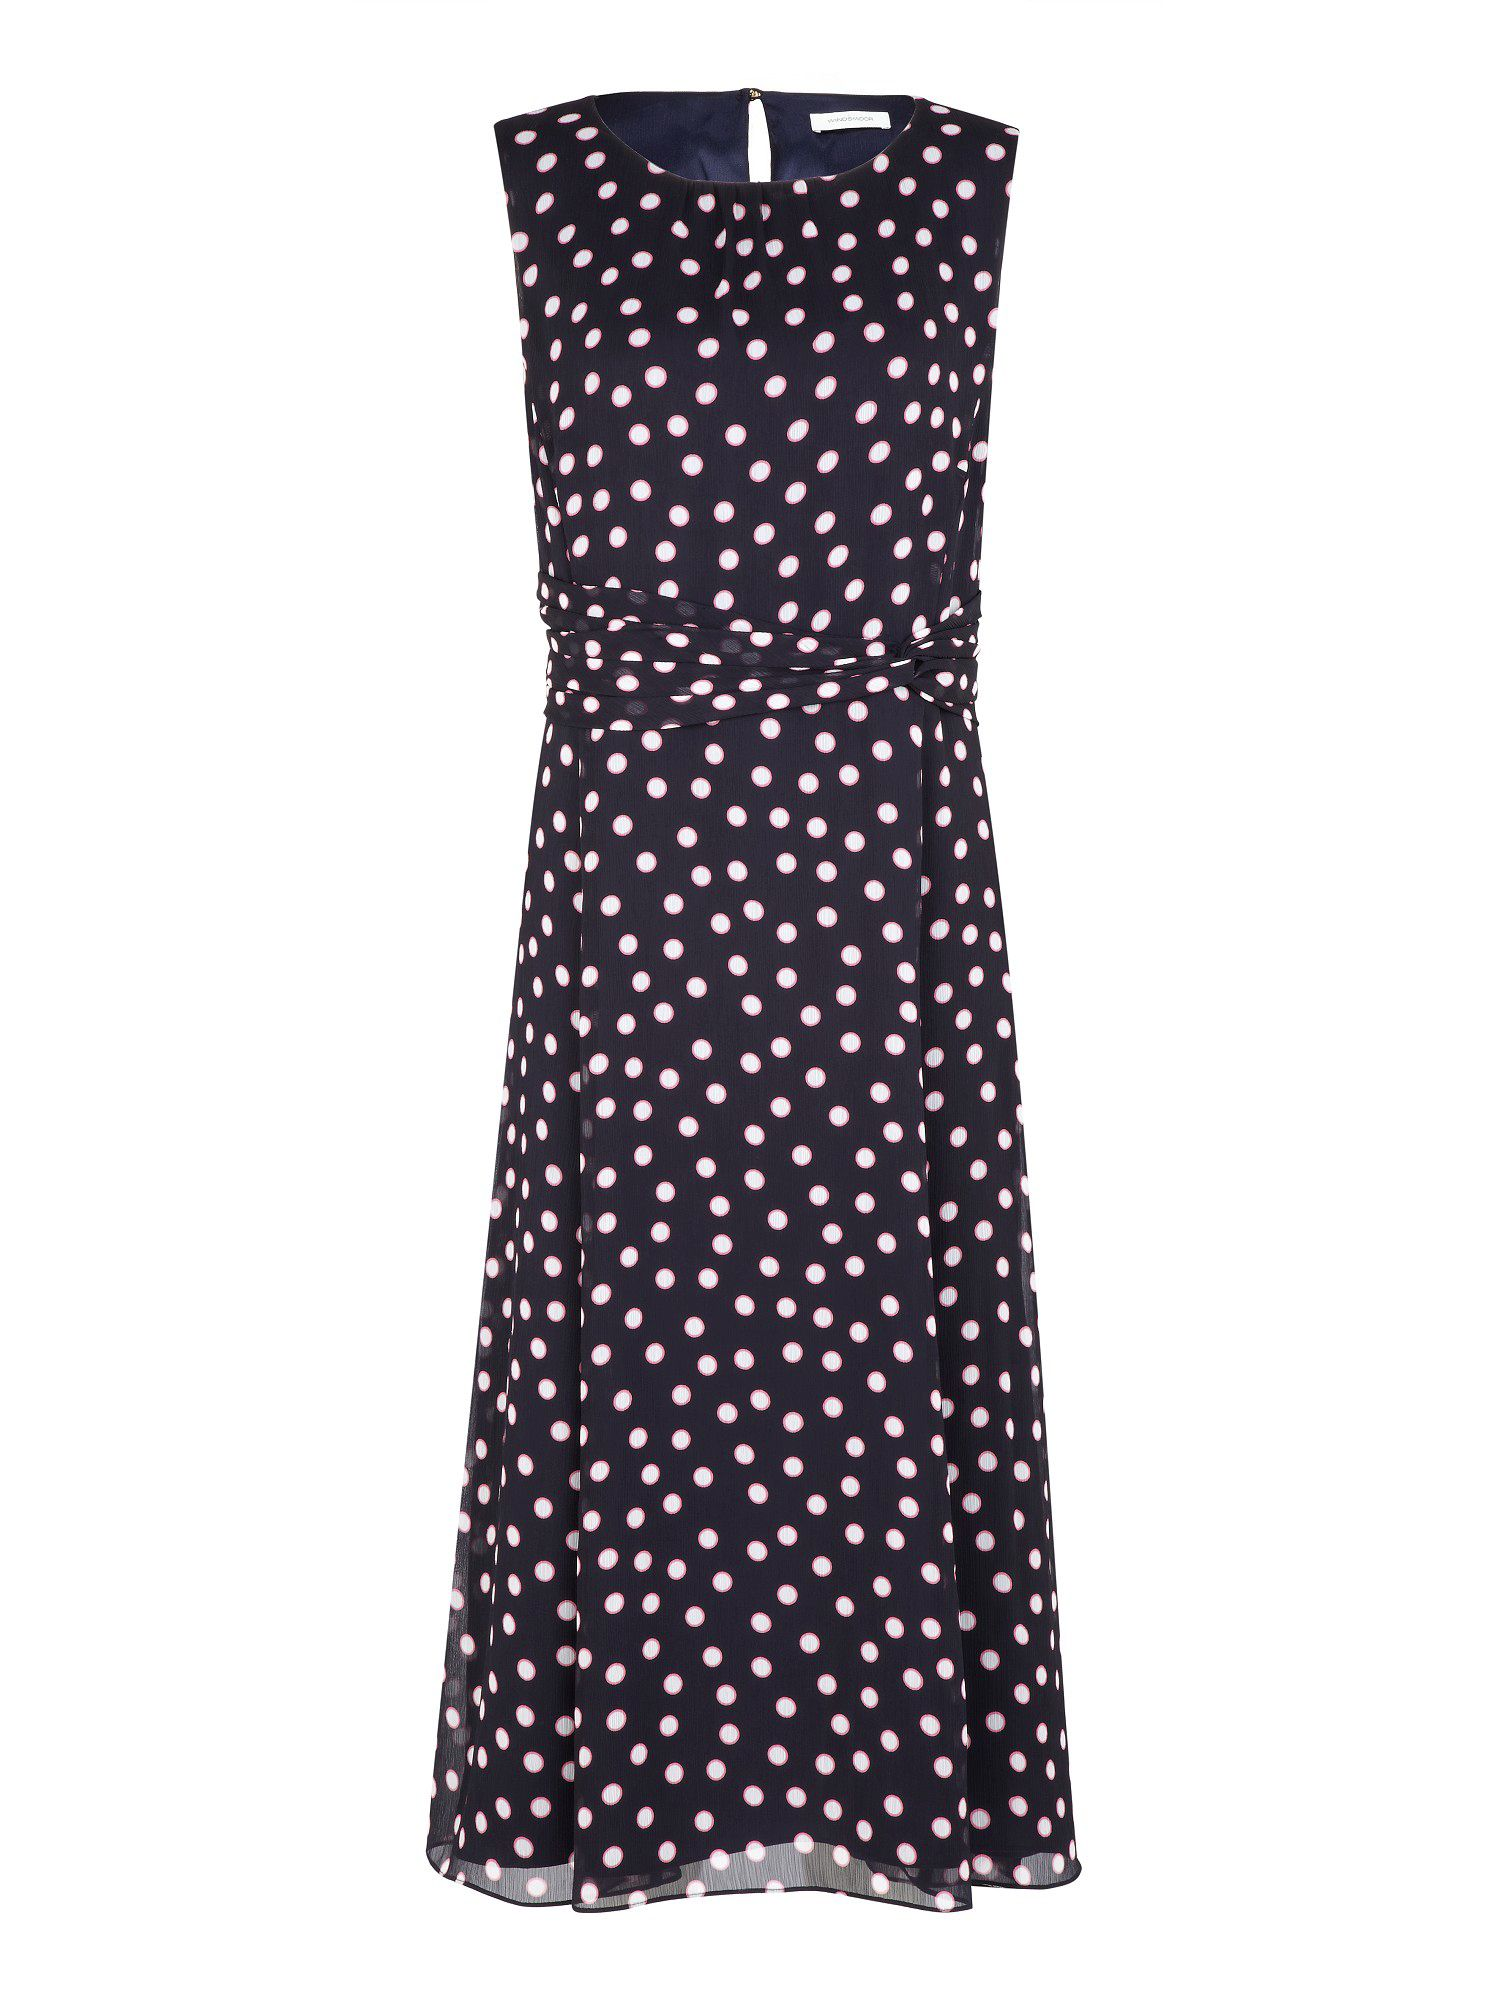 Shadow spot print dress